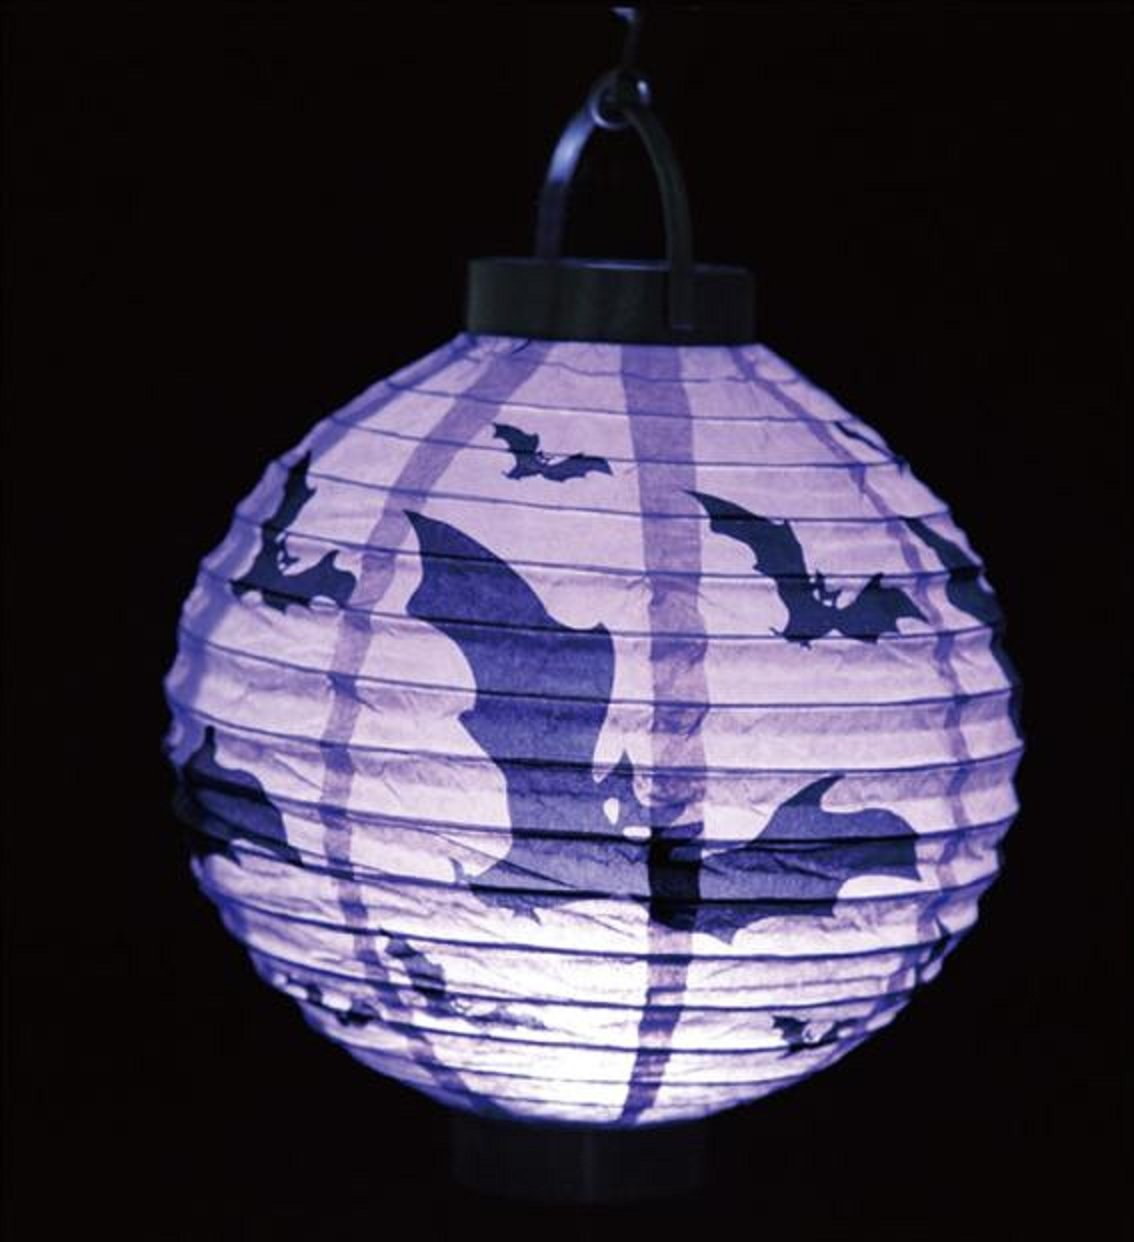 TOPUNDER Halloween Party Props Decoration Accessories Round Hanging LED Paper Lantern Pumpkin Spider Bat Hanging Light Lamp Holiday Party Decor Scary Light (Purple)